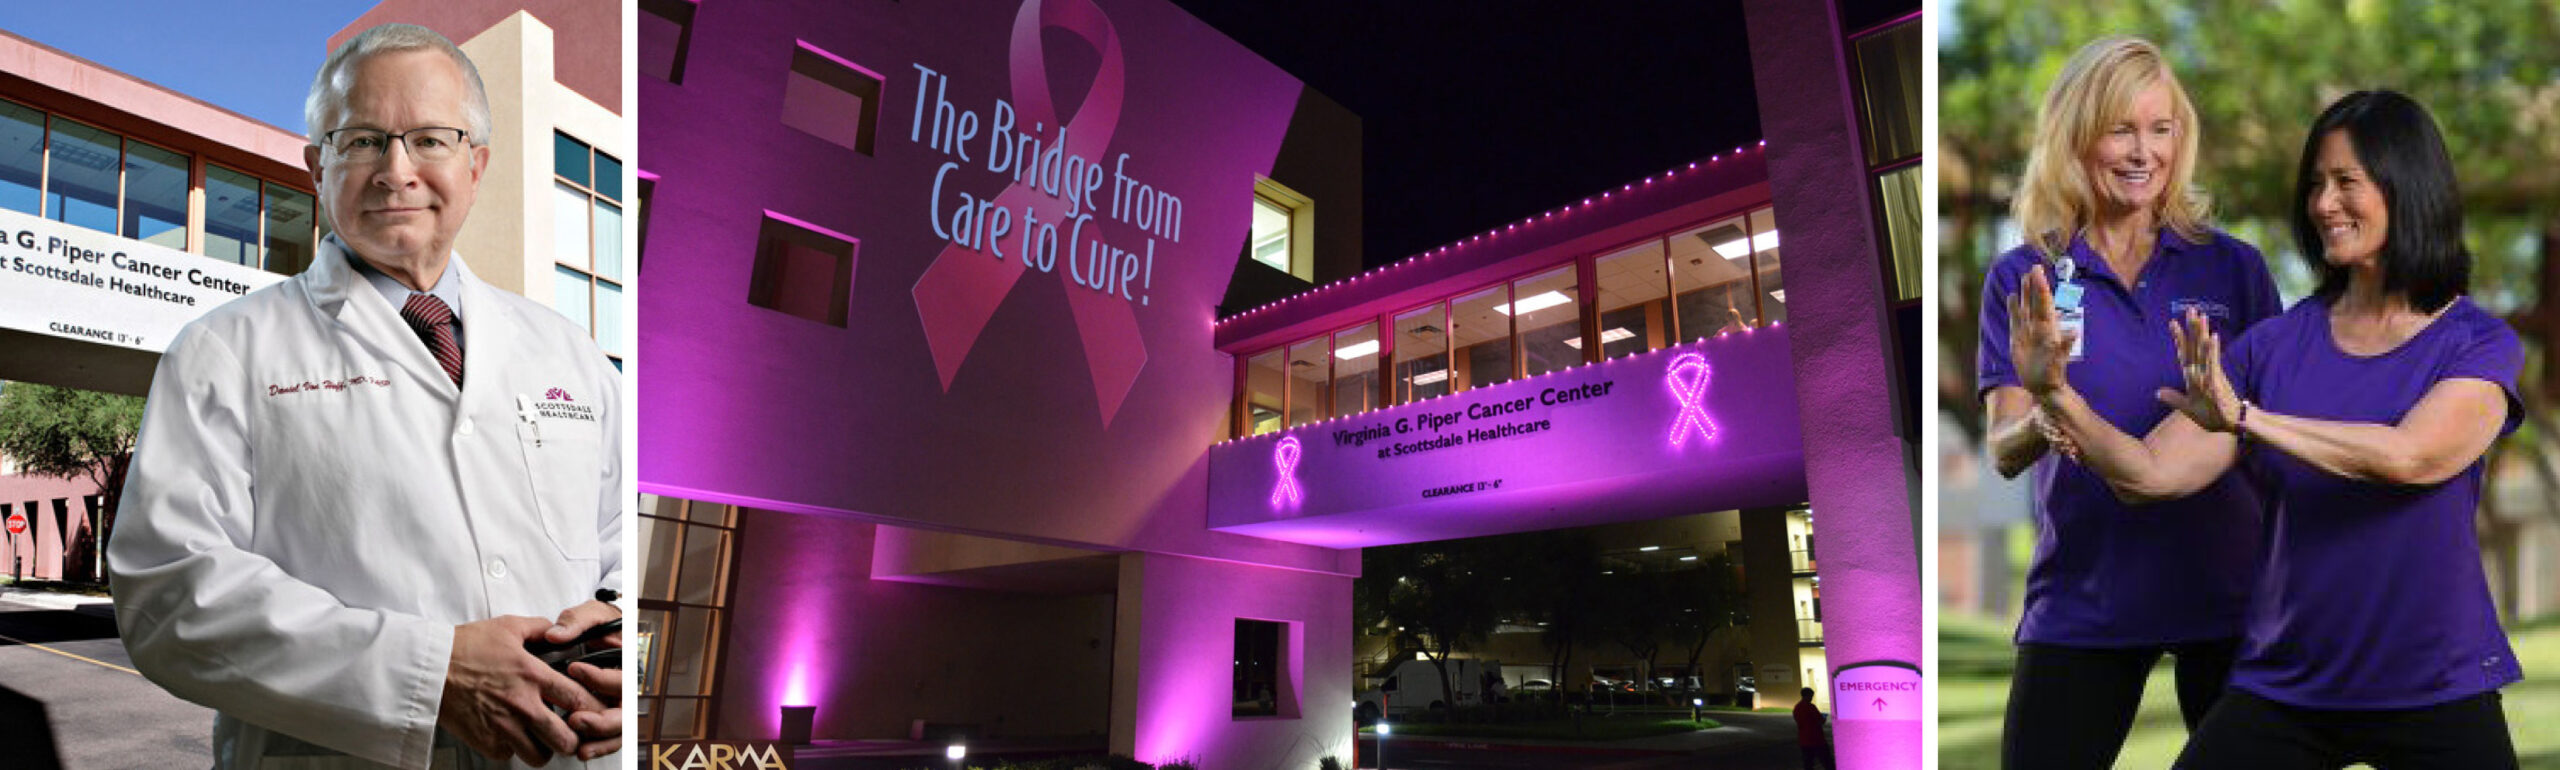 Virginia G. Piper Cancer Center is one of the best!